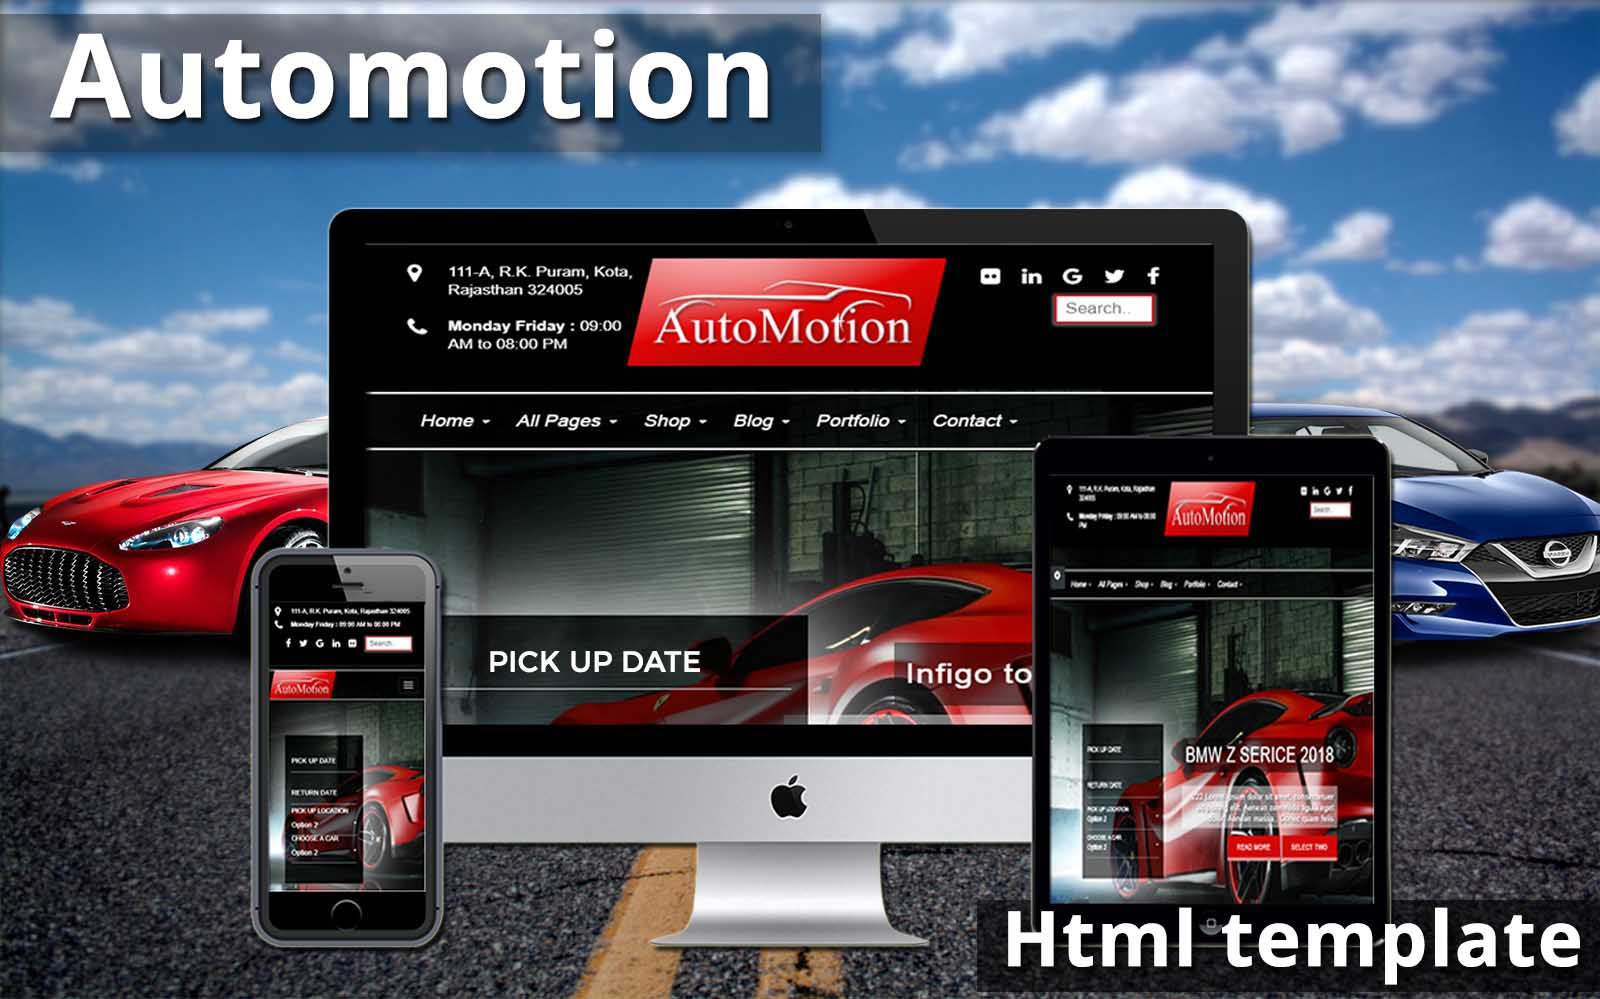 automotion html template